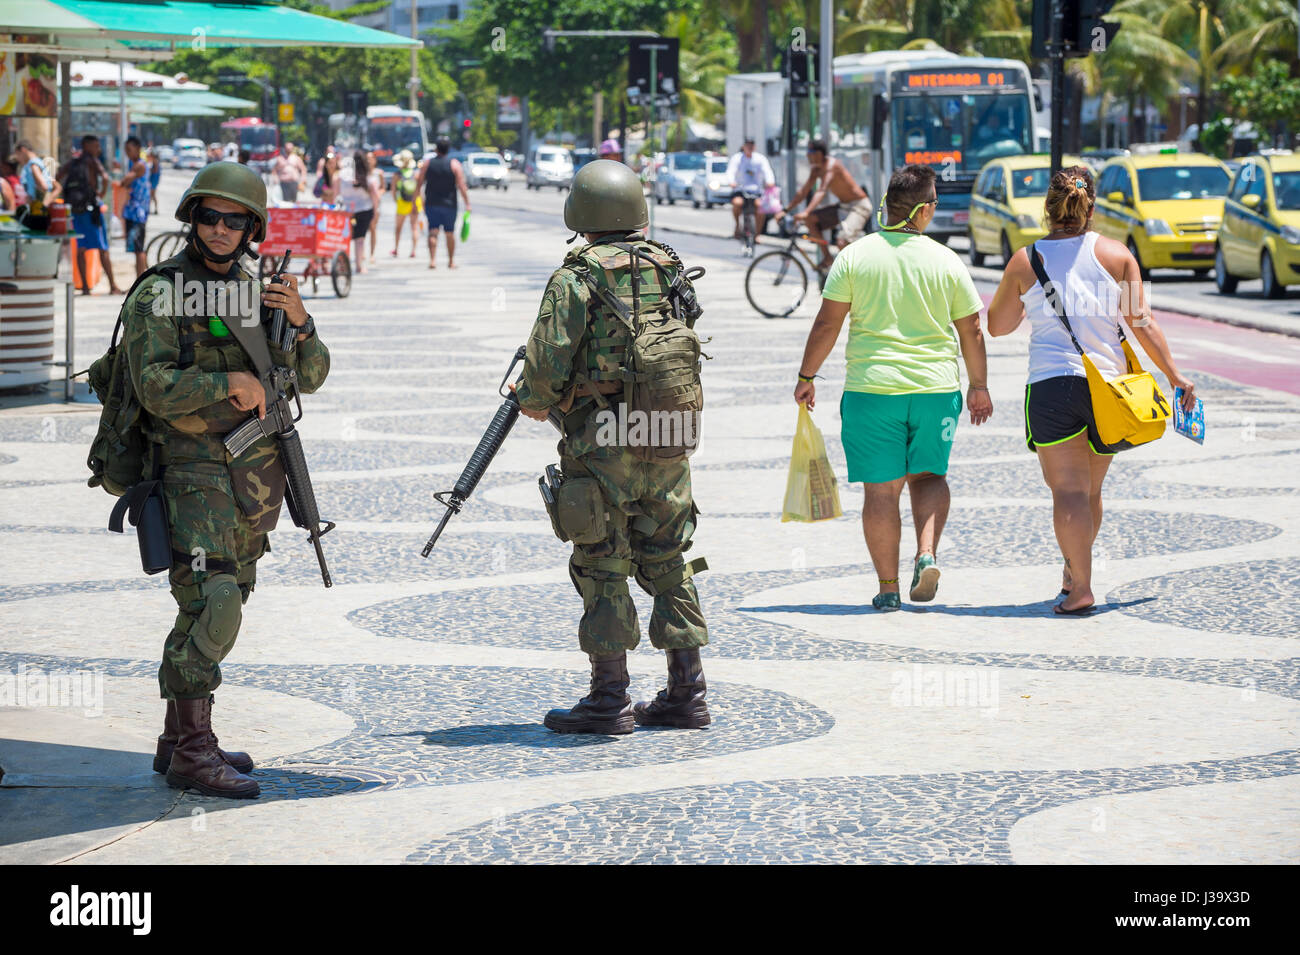 RIO DE JANEIRO - FEBRUARY 10, 2017: Two Brazilian Army soldiers stand in full camouflage uniform on the boardwalk - Stock Image